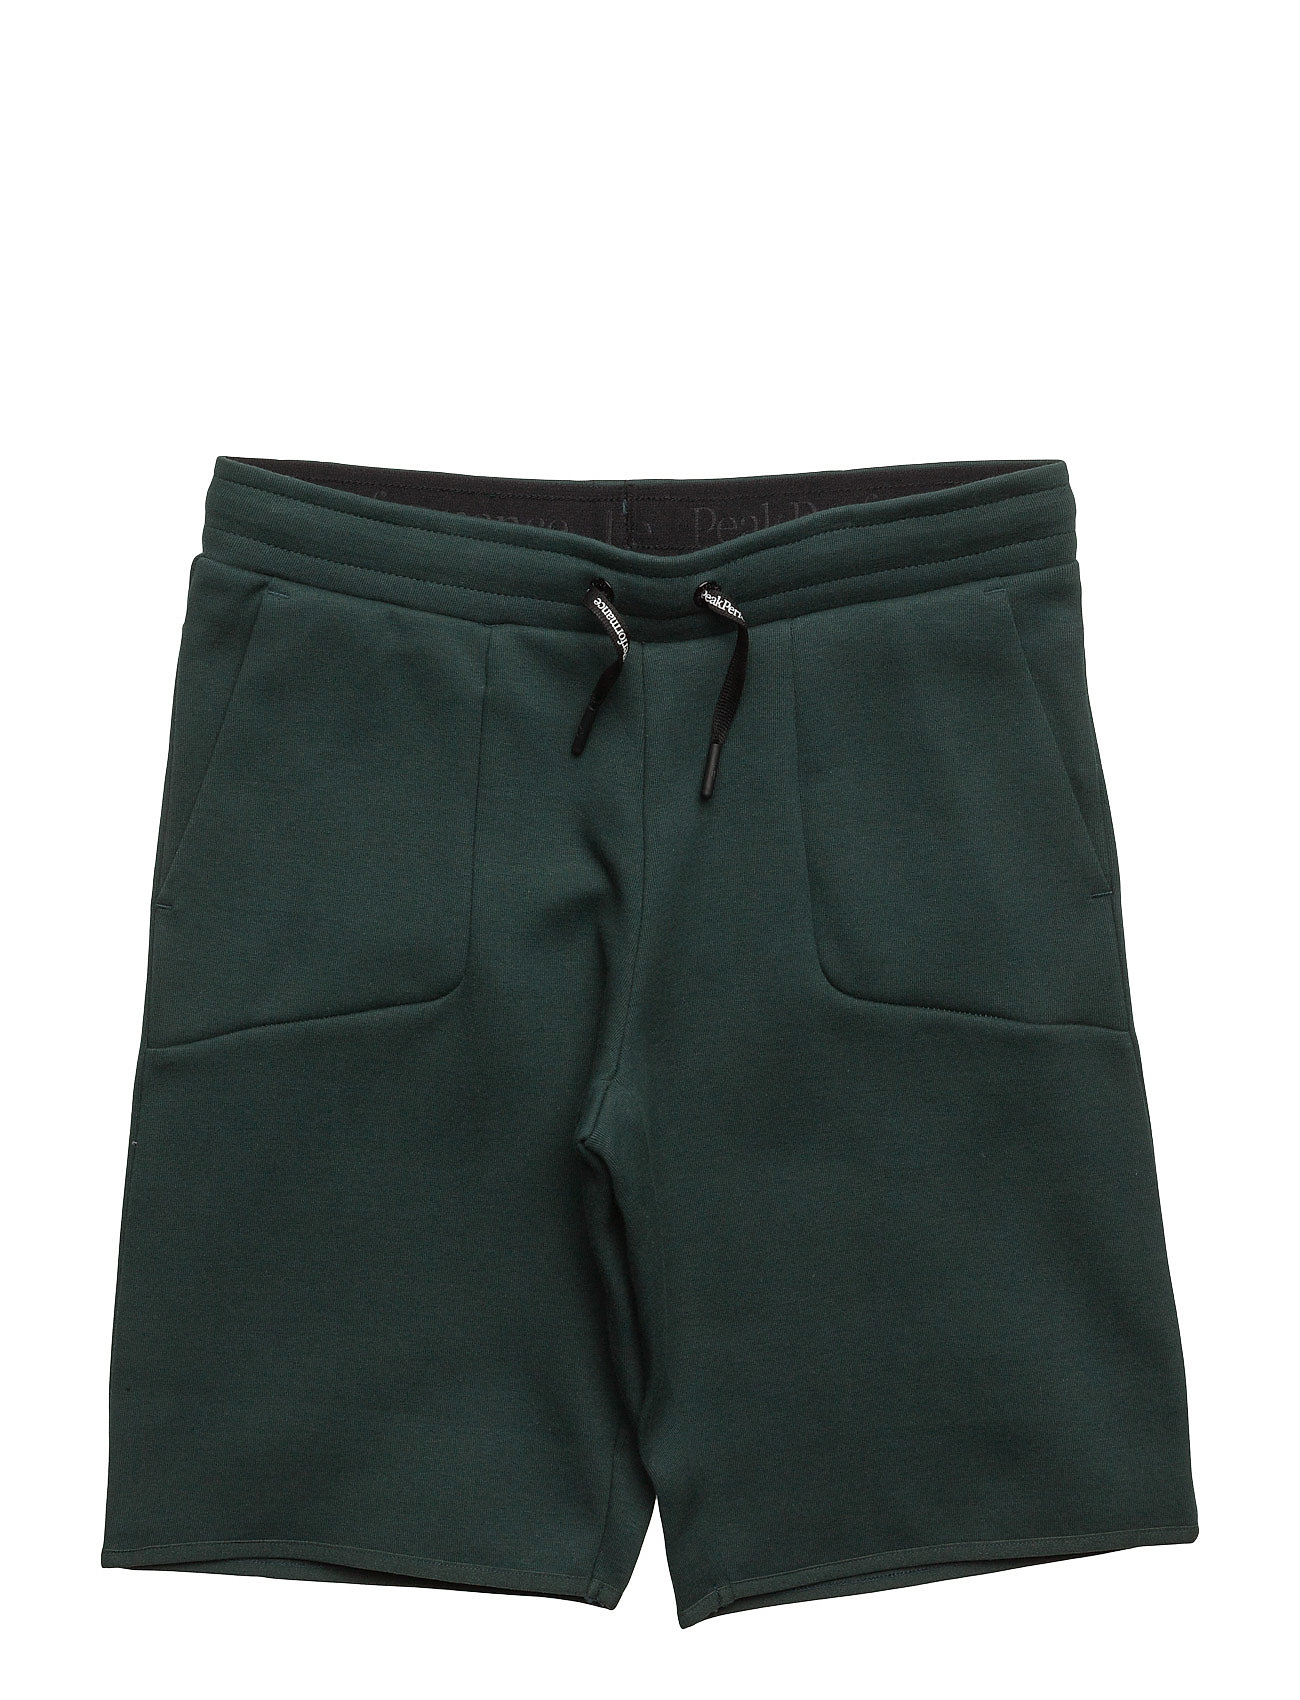 Jr Tec Sh Peak Performance Shorts til Børn i